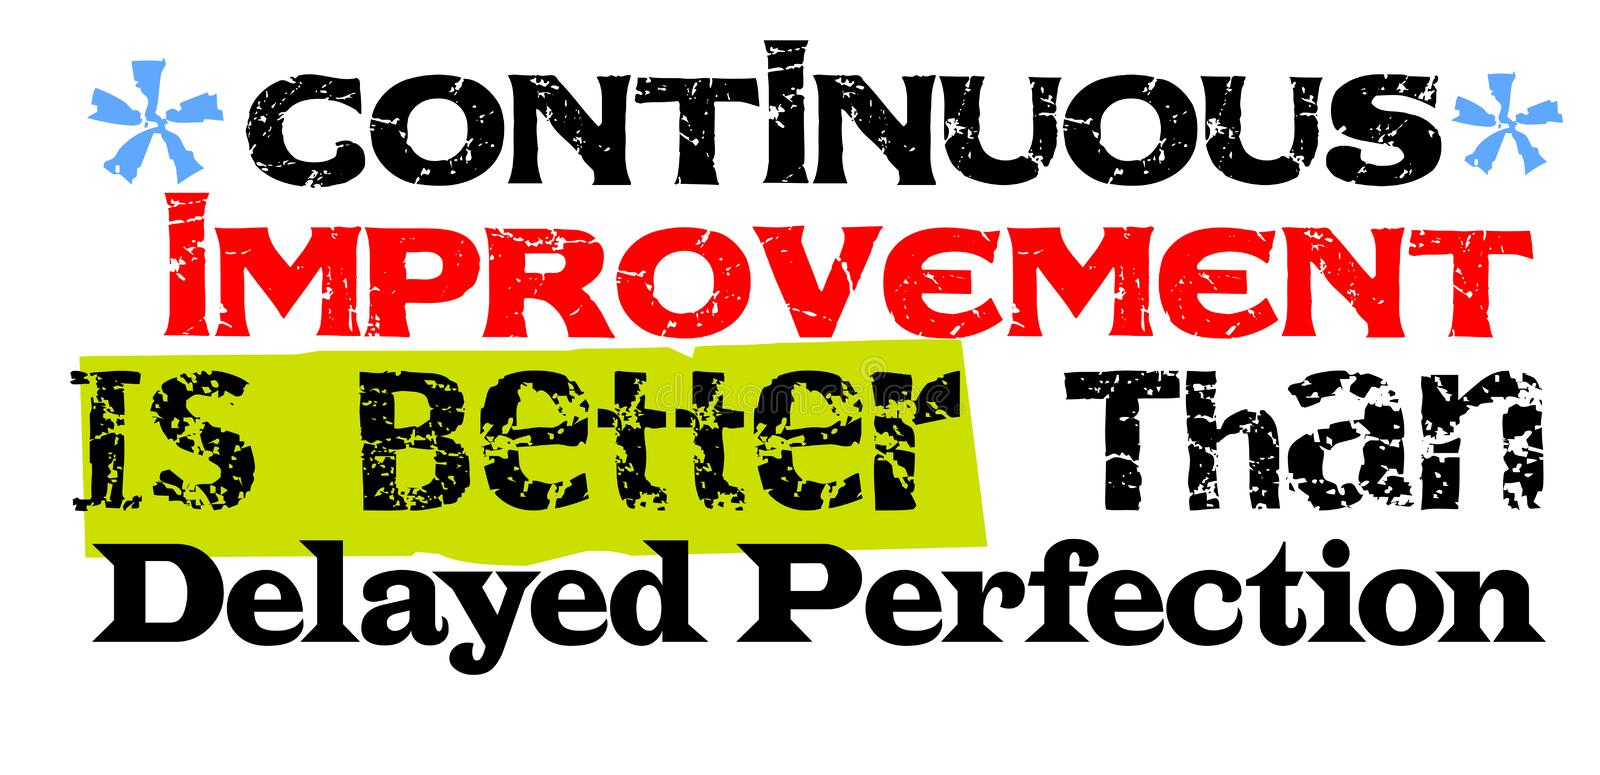 Continuous Improvement Is Better Than Delayed Perfection. Creative typographic motivational poster royalty free illustration